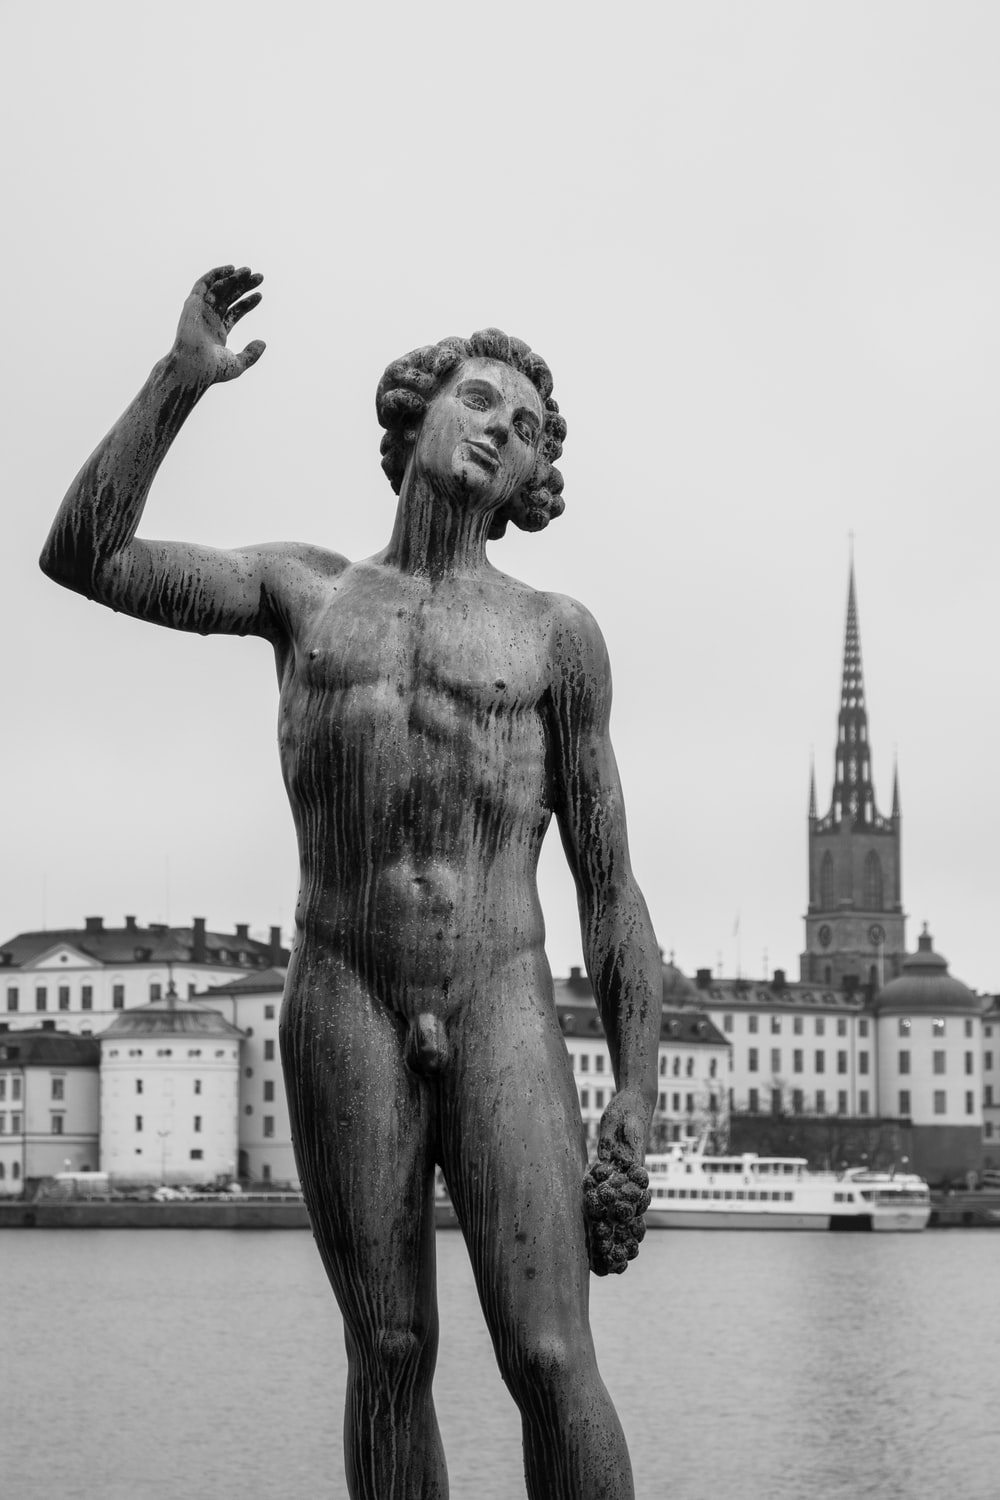 grayscale photography of topless man statue